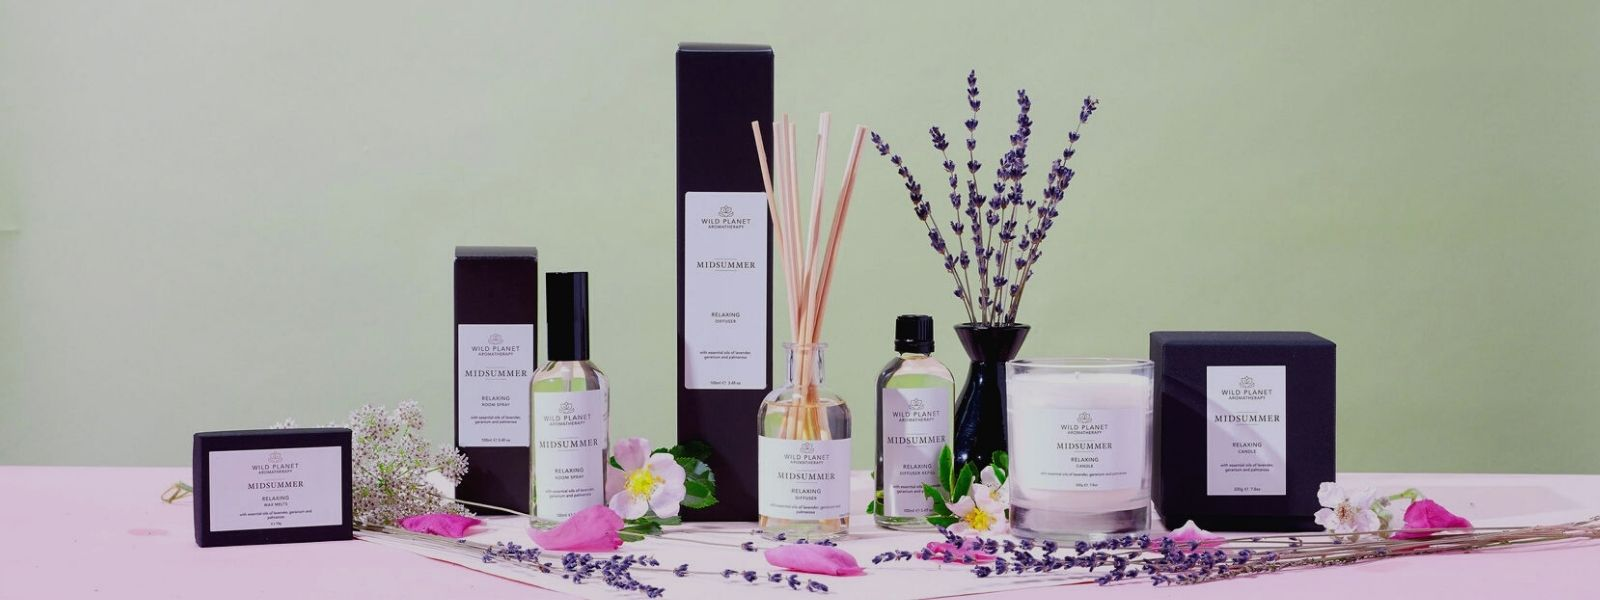 Midsummer relaxing Home Fragrance Collection by Wild Planet Aromatherapy